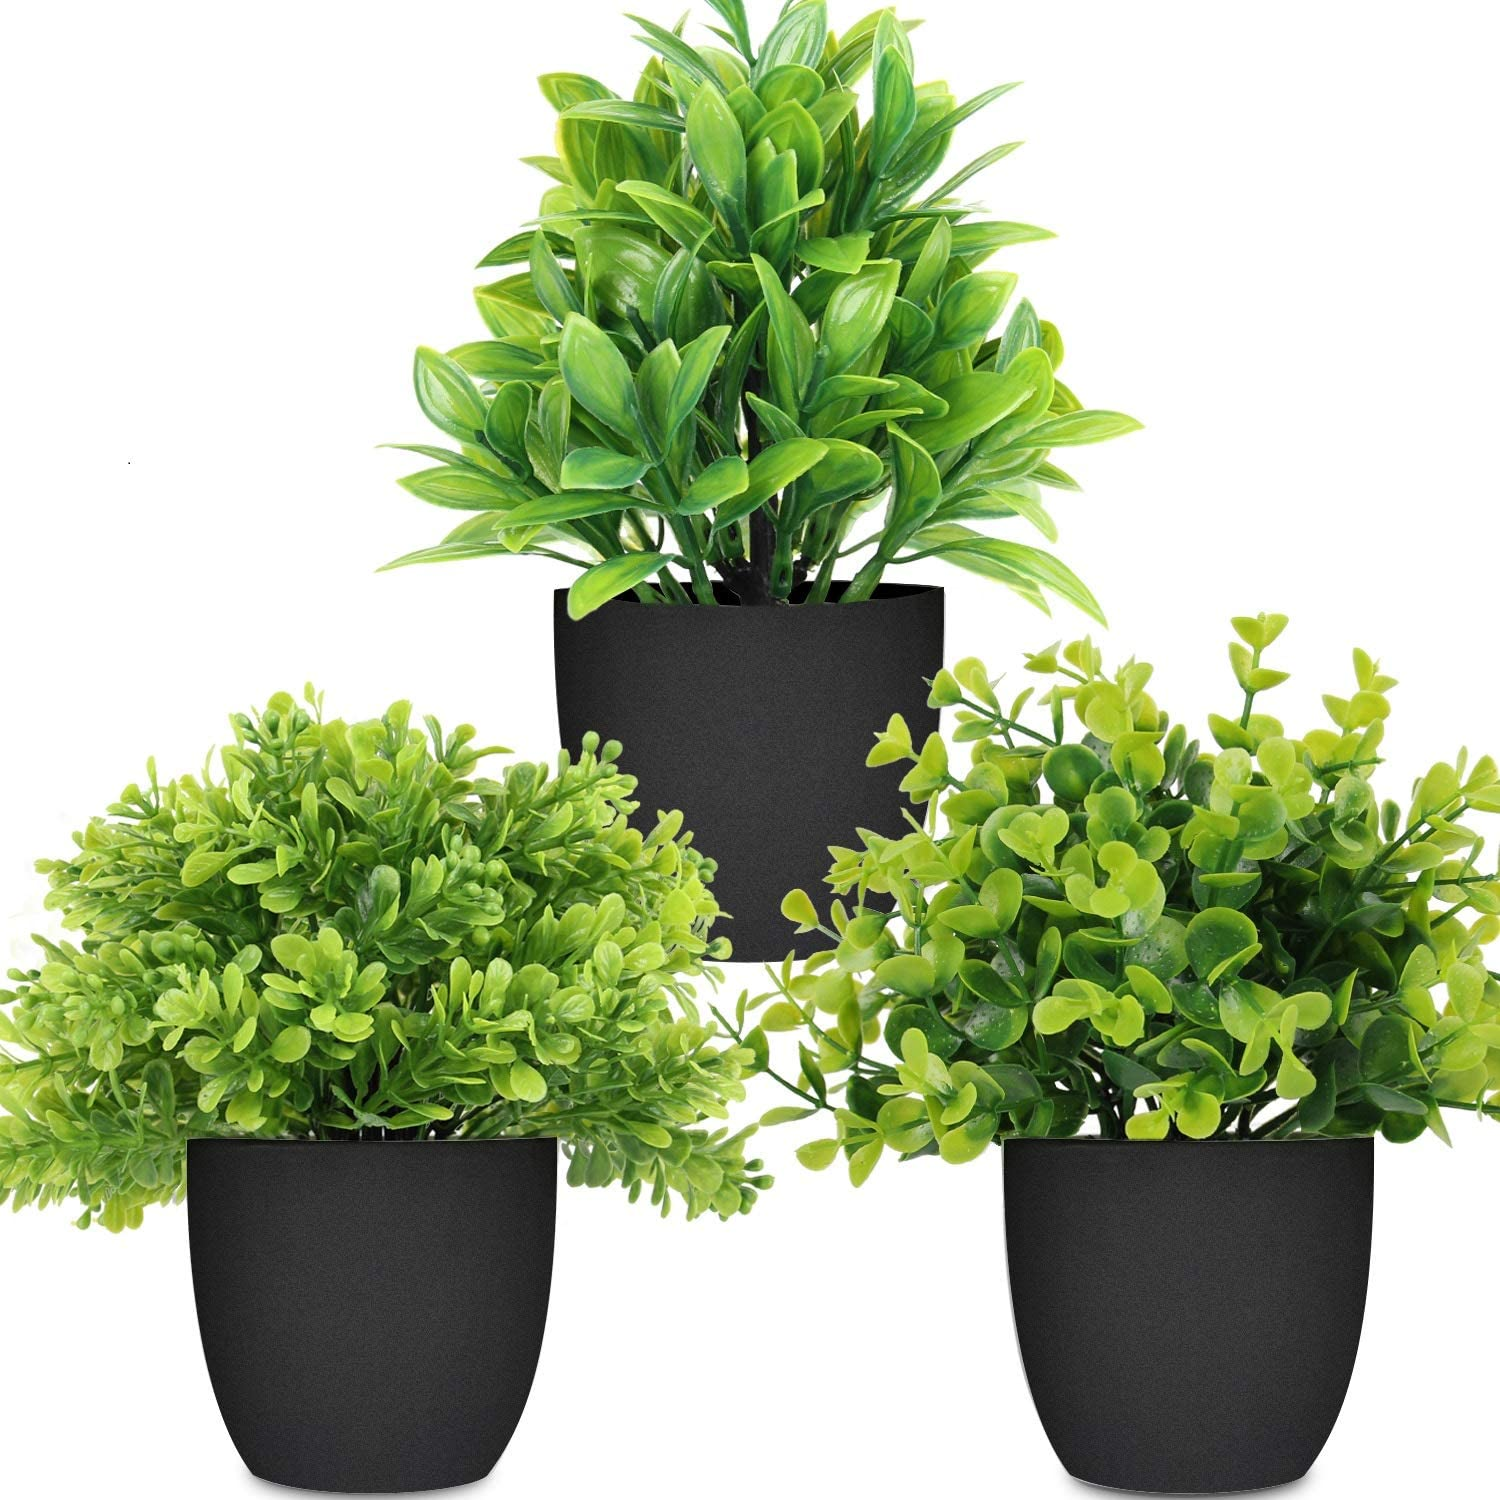 LELEE Artificial Potted Plants Mini Fake Plants, 3 Pack Small Eucalyptus Potted Faux Decorative Grass Plant with Black Plastic Pot for Home Decor, Indoor, Office, Desk, Table Decoration